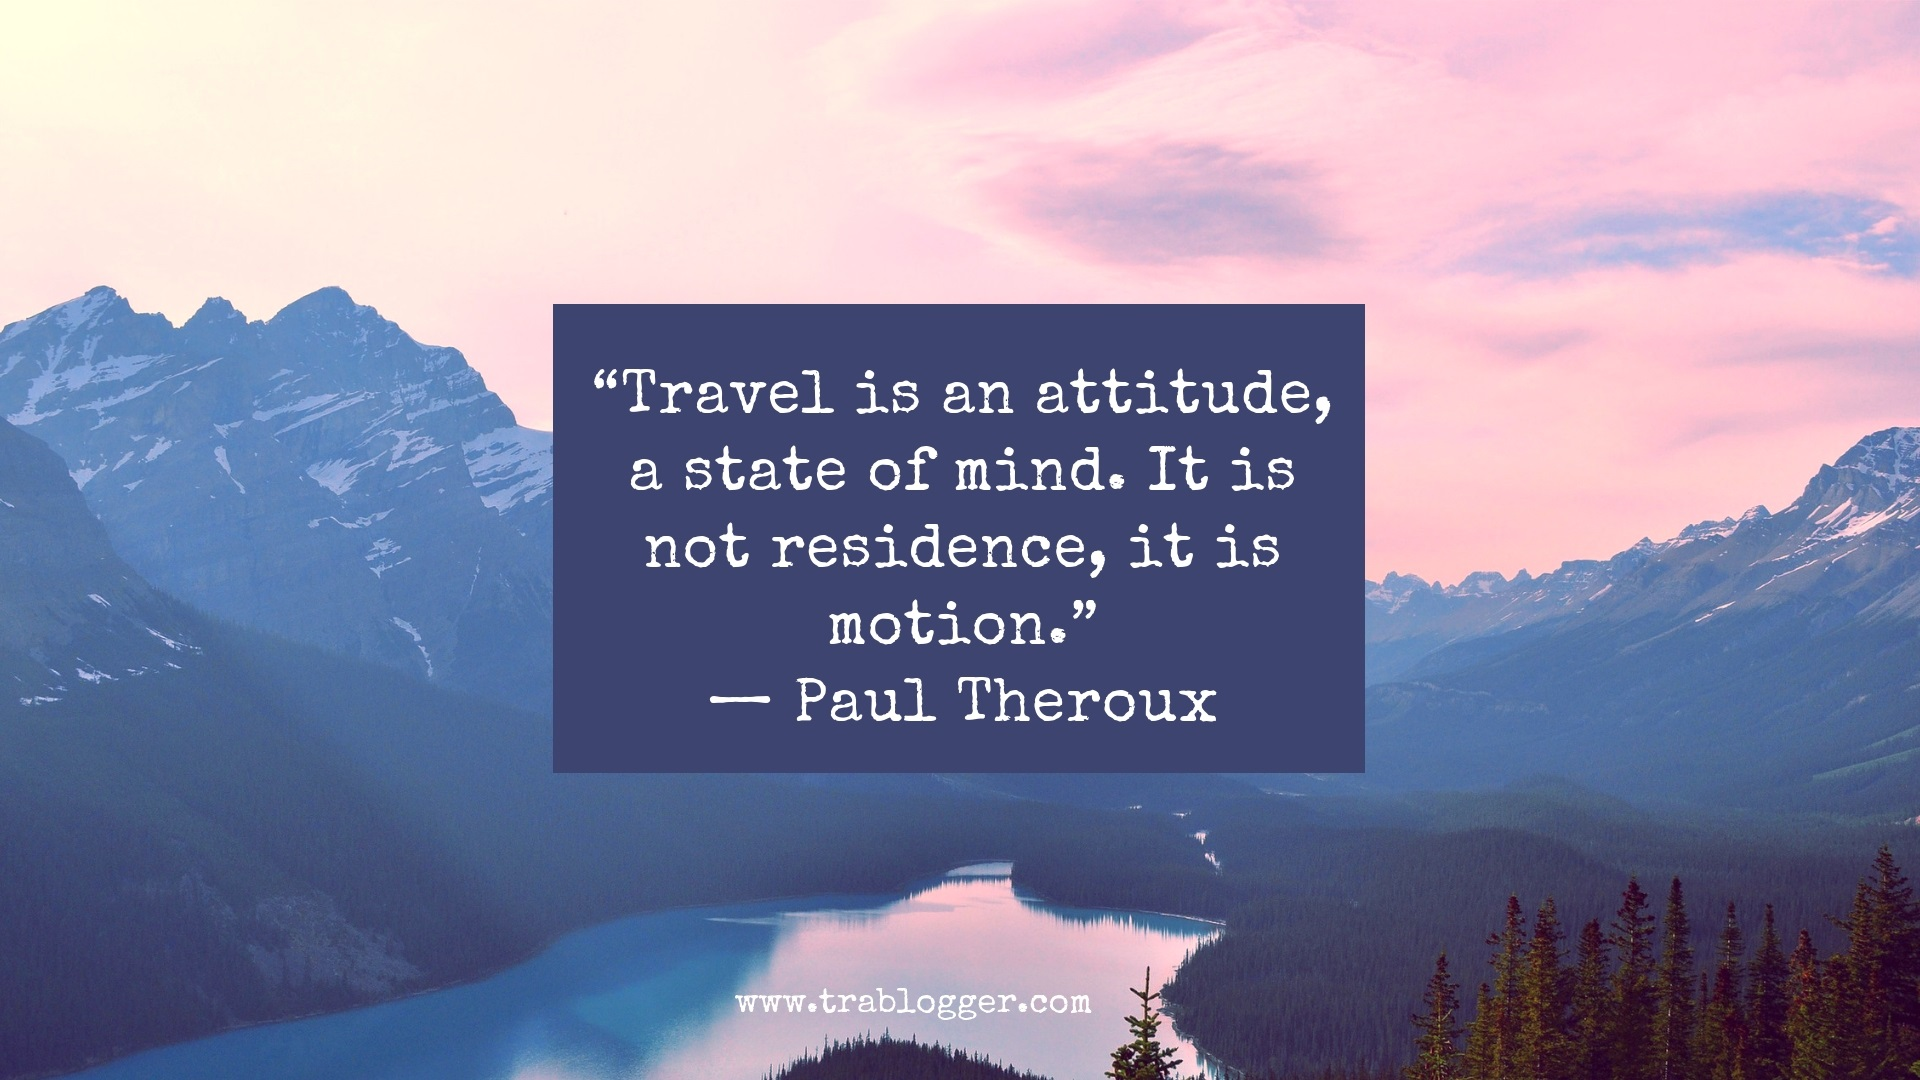 """Travel is an attitude, a state of mind. It is not residence, it is motion.""— Paul Theroux"